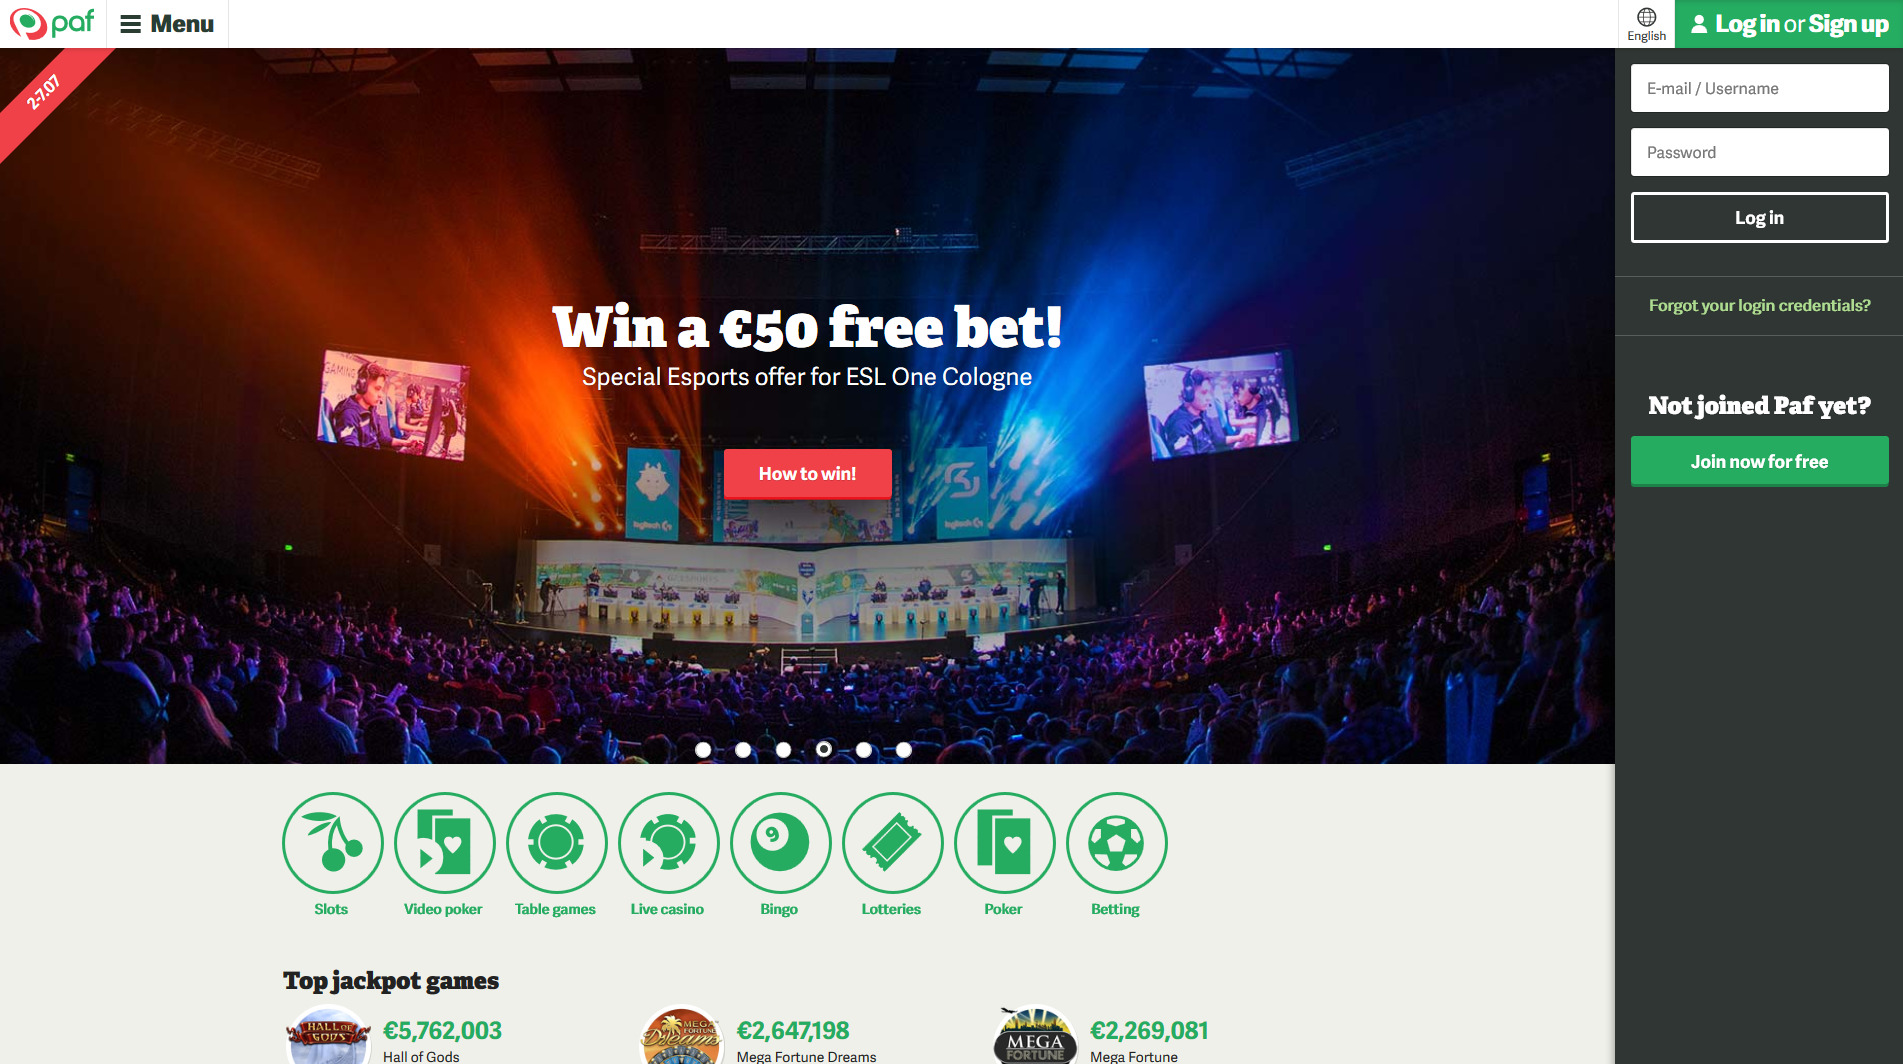 paf sports betting